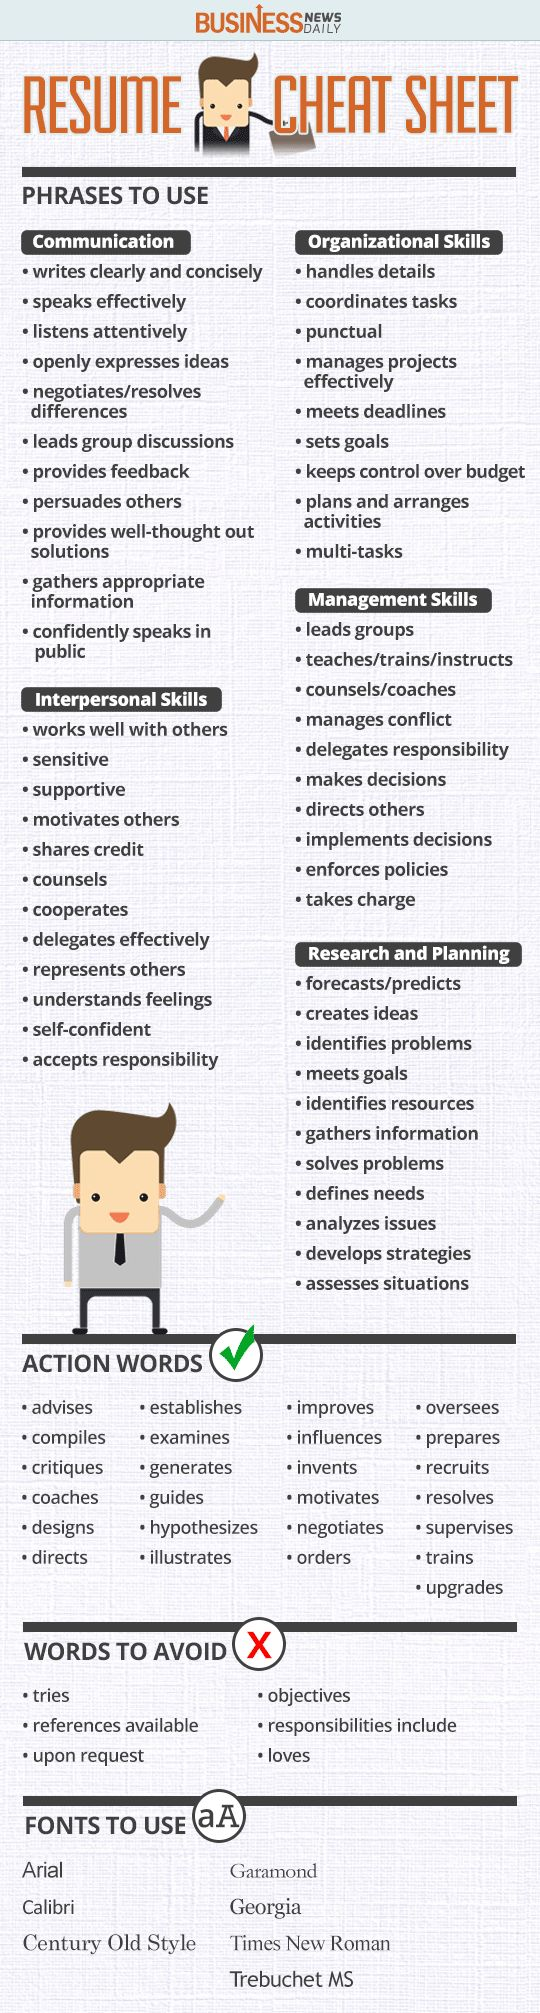 Opposenewapstandardsus  Scenic  Ideas About Resume On Pinterest  Cv Format Resume Cv And  With Remarkable Resume Cheat Sheet Infographic Andrews Almost Done With A Complete Unit On Employment Which With Comely Scholarship Resume Templates Also Sales Associate Description Resume In Addition Internship Experience On Resume And First Resume No Work Experience As Well As Project Analyst Resume Additionally Sample Resume Profile Statements From Pinterestcom With Opposenewapstandardsus  Remarkable  Ideas About Resume On Pinterest  Cv Format Resume Cv And  With Comely Resume Cheat Sheet Infographic Andrews Almost Done With A Complete Unit On Employment Which And Scenic Scholarship Resume Templates Also Sales Associate Description Resume In Addition Internship Experience On Resume From Pinterestcom